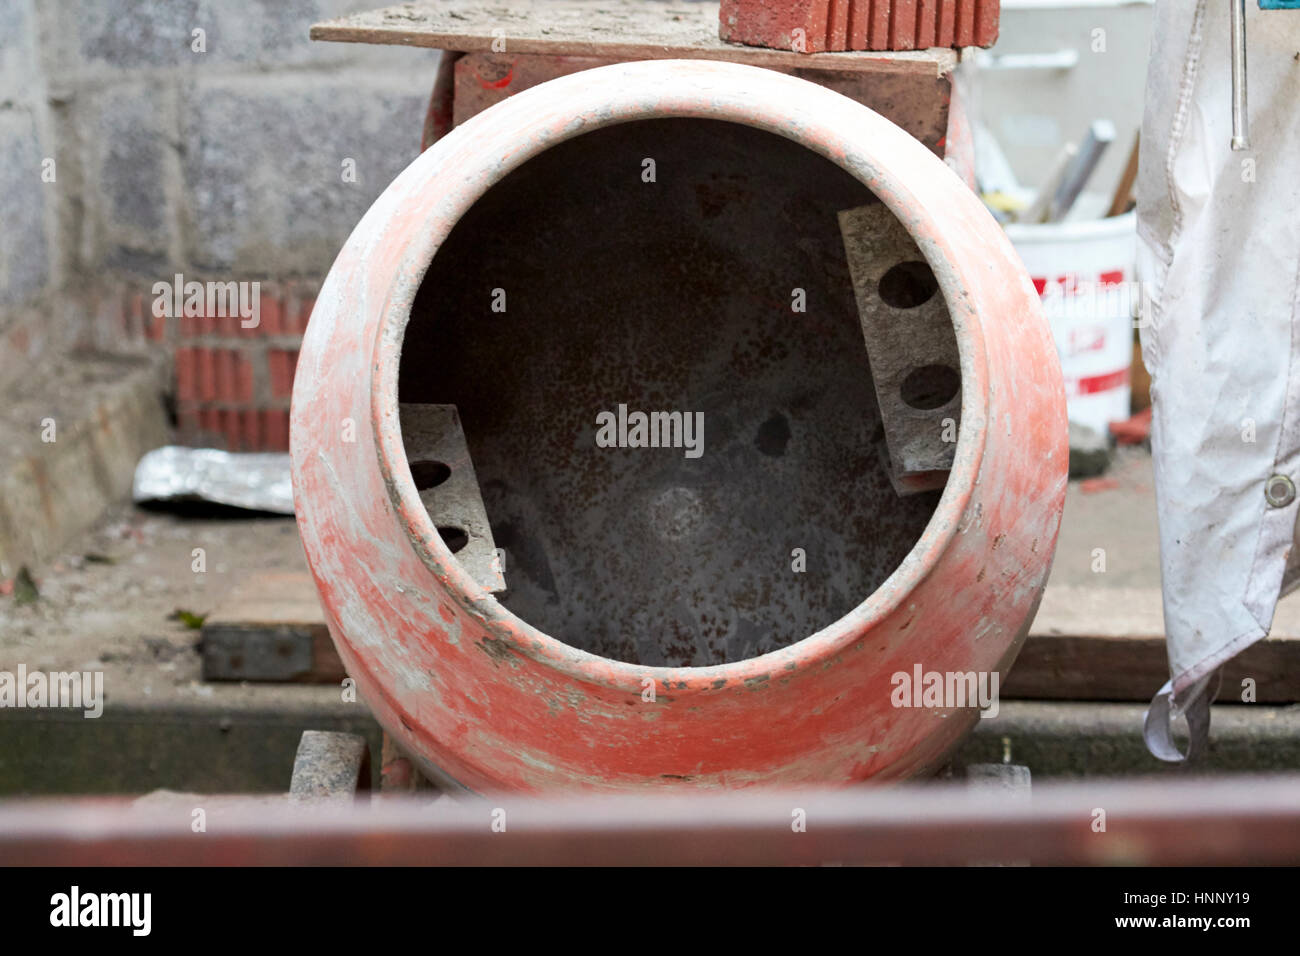 old used cement mixer on an extension household construction site in the uk - Stock Image